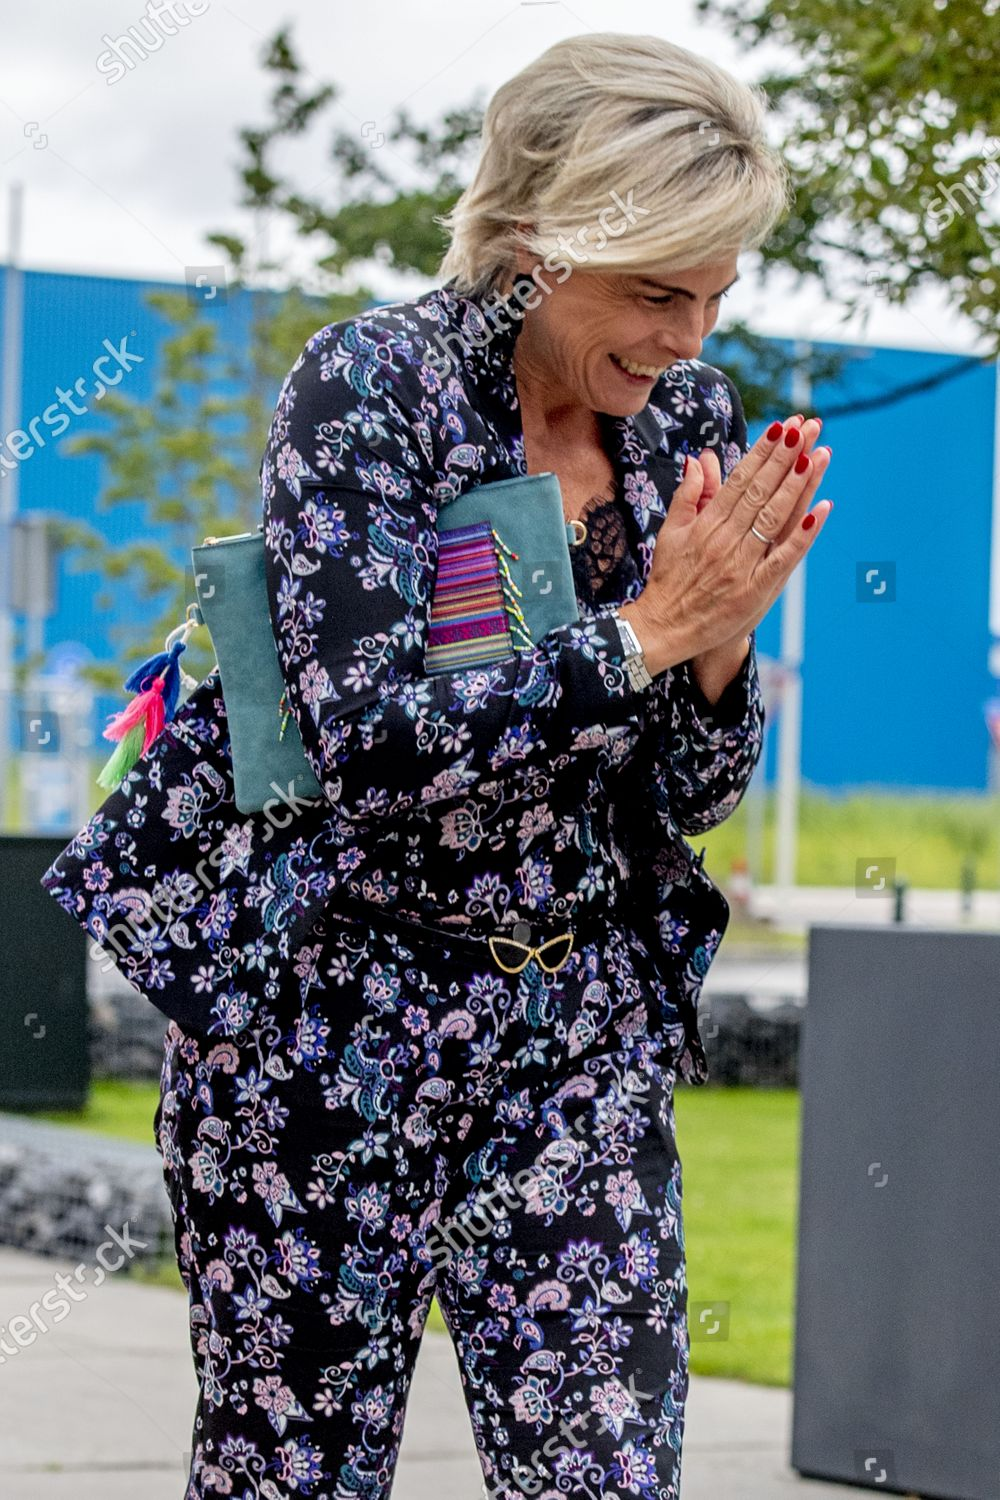 princess-laurentien-attends-a-coronavirus-proof-live-conference-fokker-terminal-the-hague-the-netherlands-shutterstock-editorial-10697685f.jpg